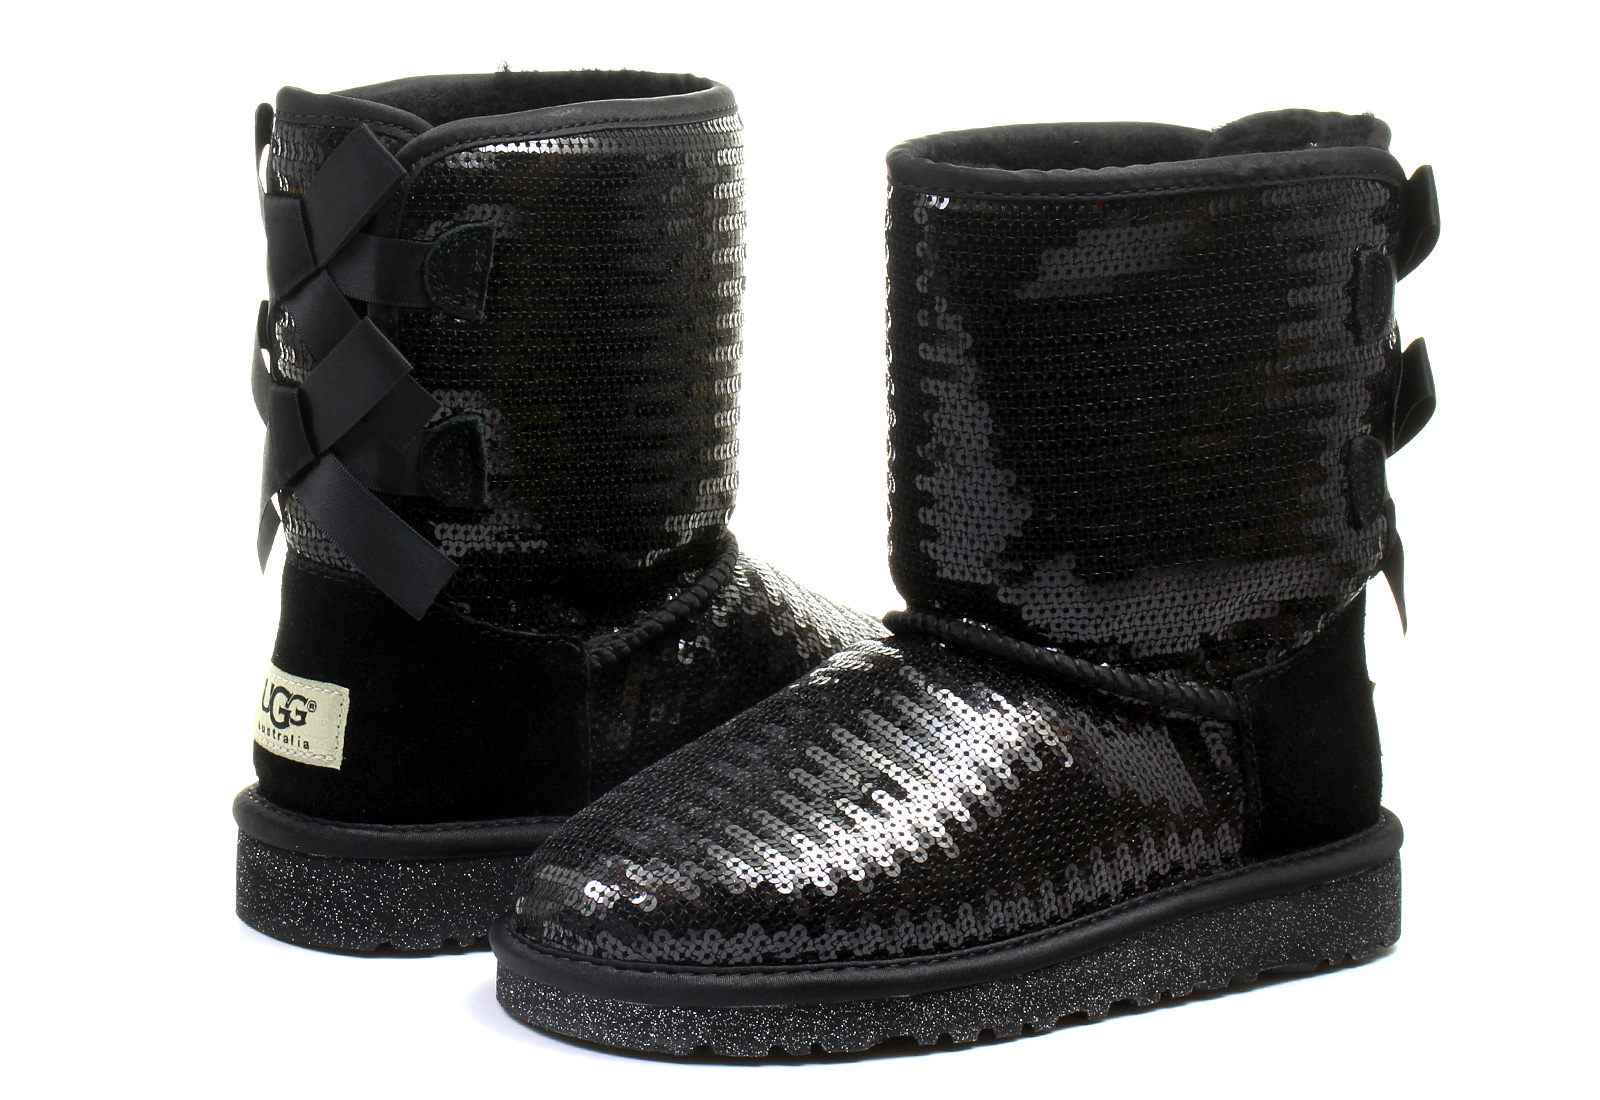 d13ca66b45d Black Sparkle Uggs With Bows - cheap watches mgc-gas.com